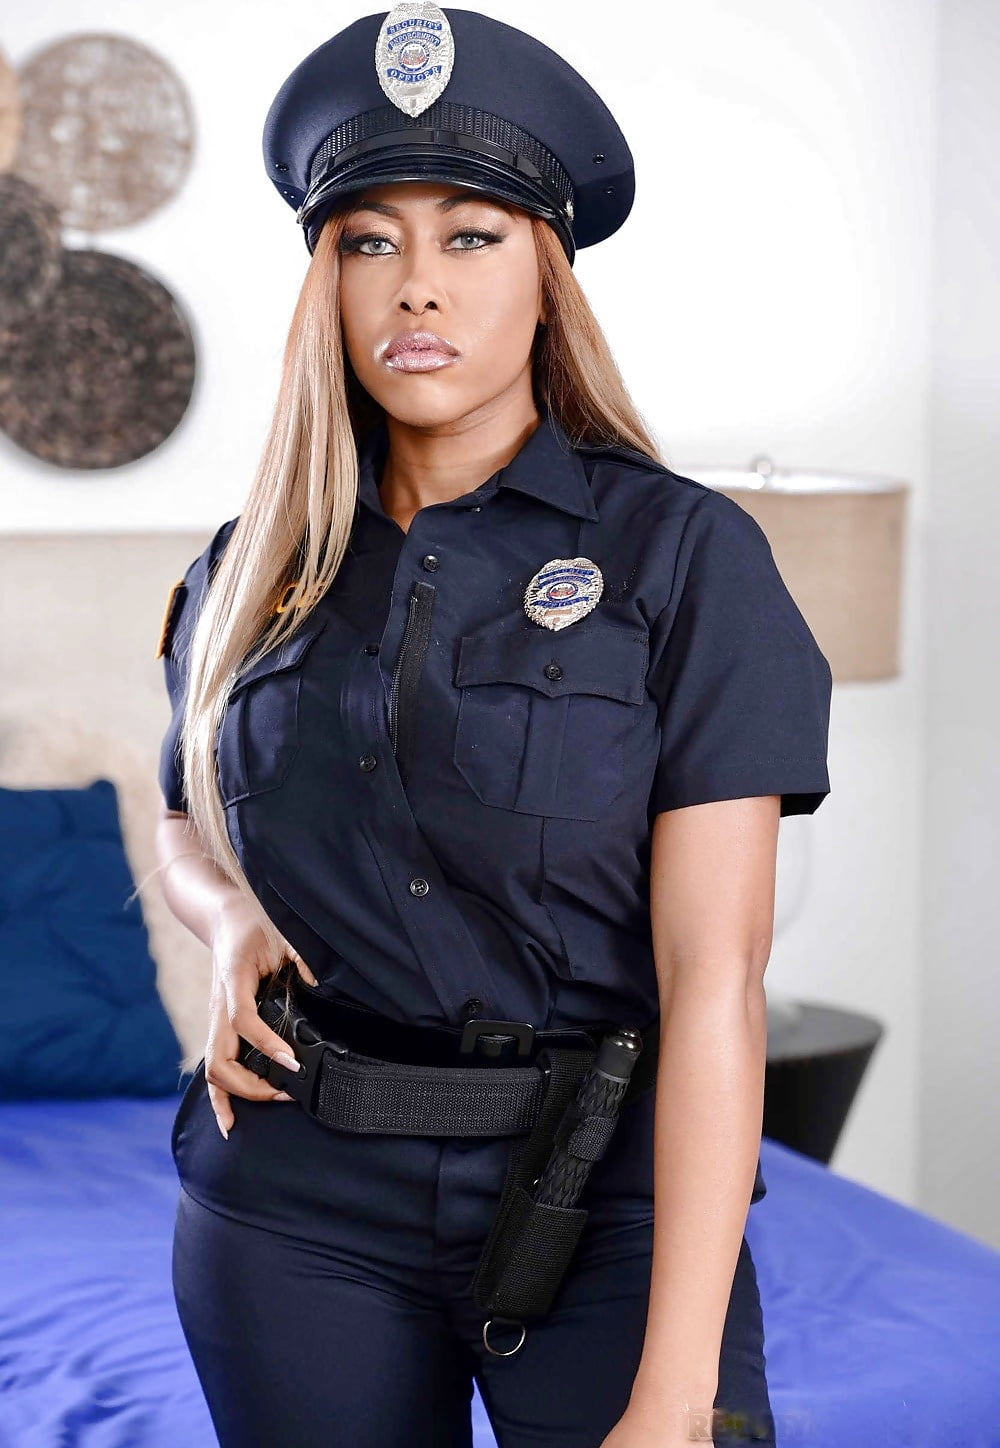 Police officer porn star, mofos porn movie and sences